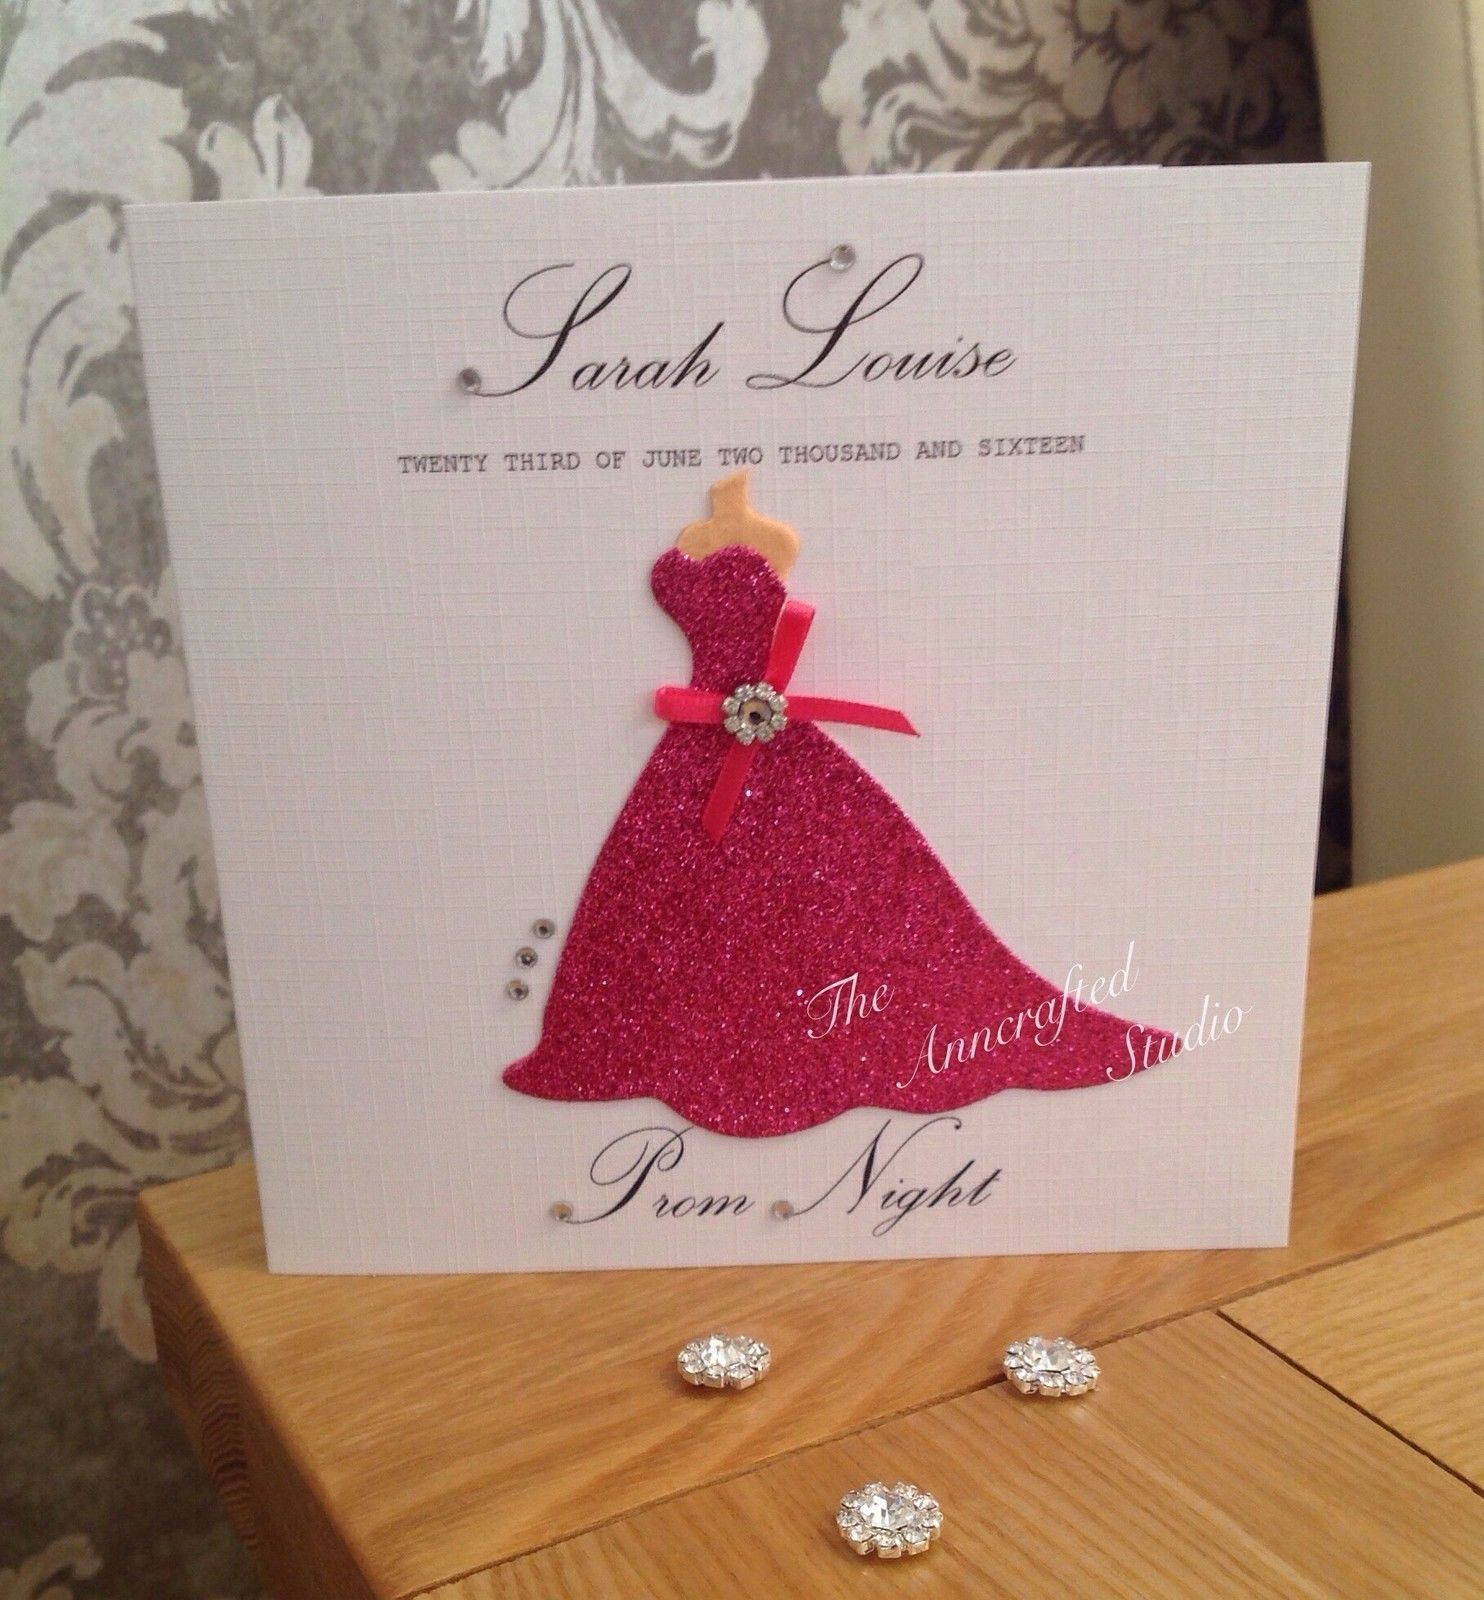 Details about LUXURY HANDMADE Personalised PROM NIGHT Greeting Card ...